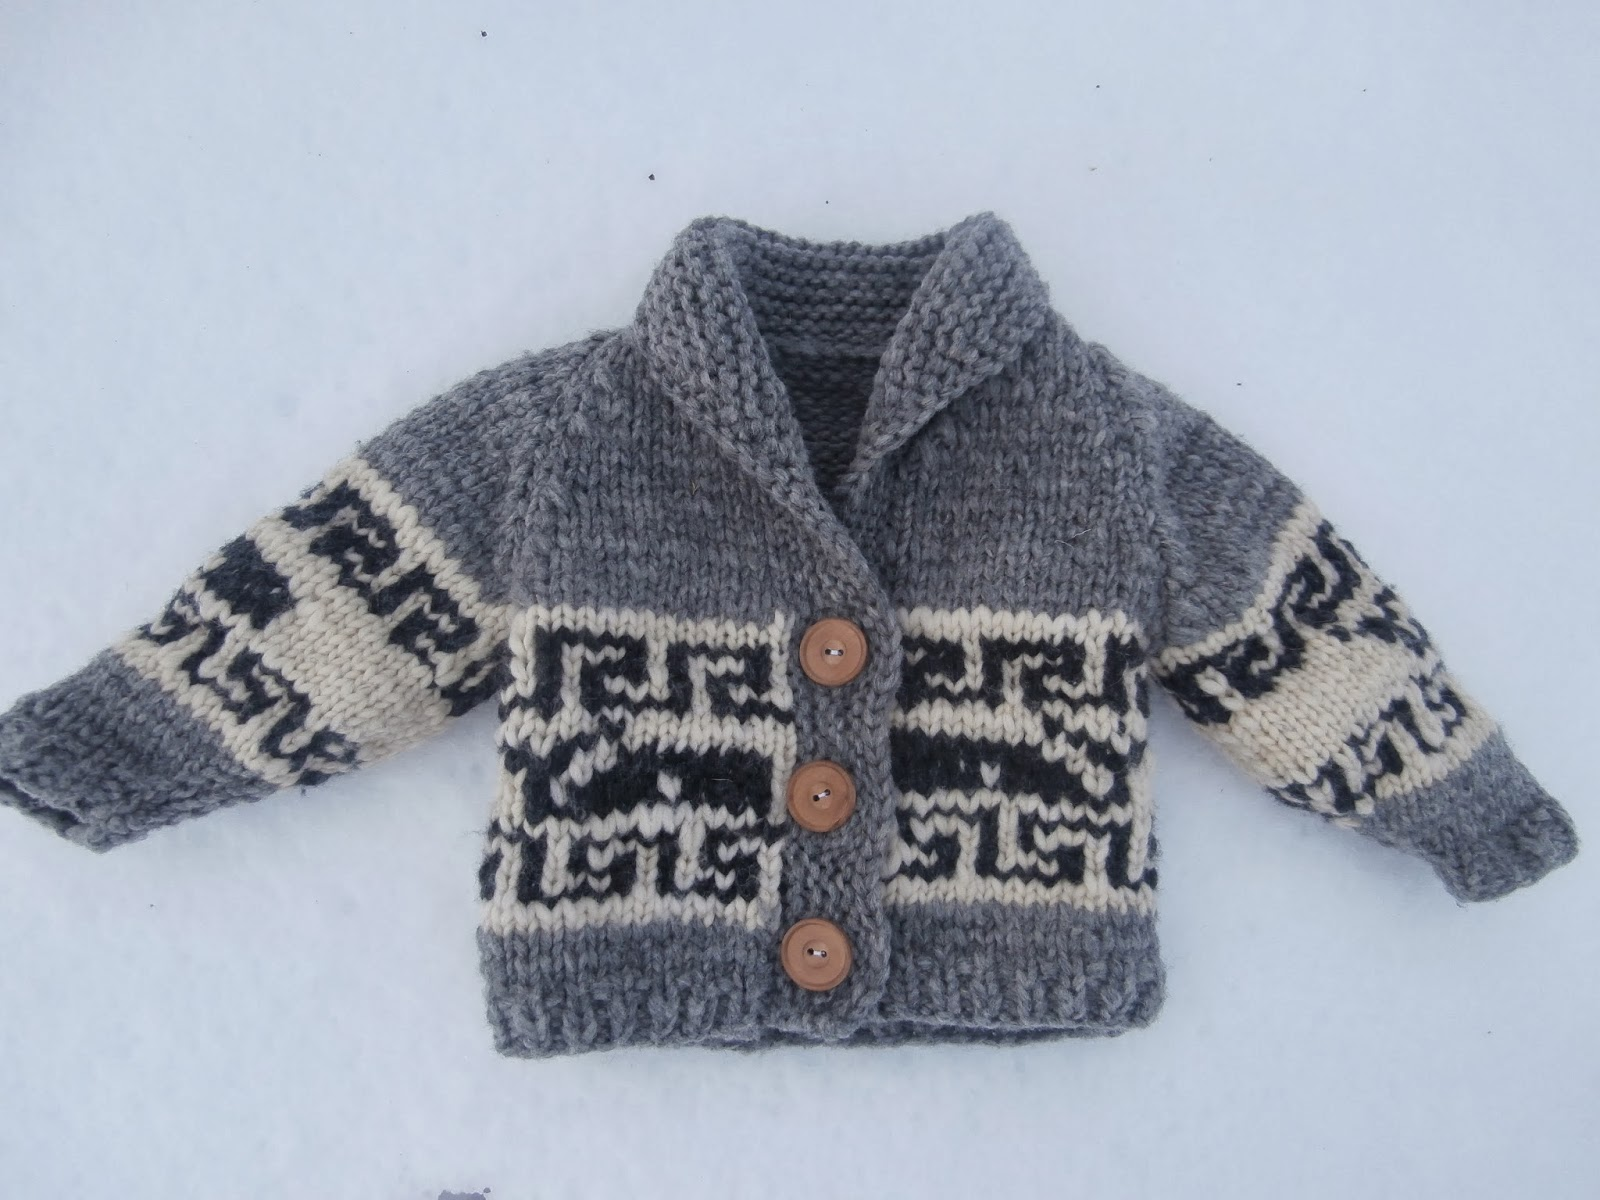 Knitting Pattern Toddler Cardigan : Honey Nutbrowns: Knitting!: Northern Whale Cowichan Sweater - Toddler